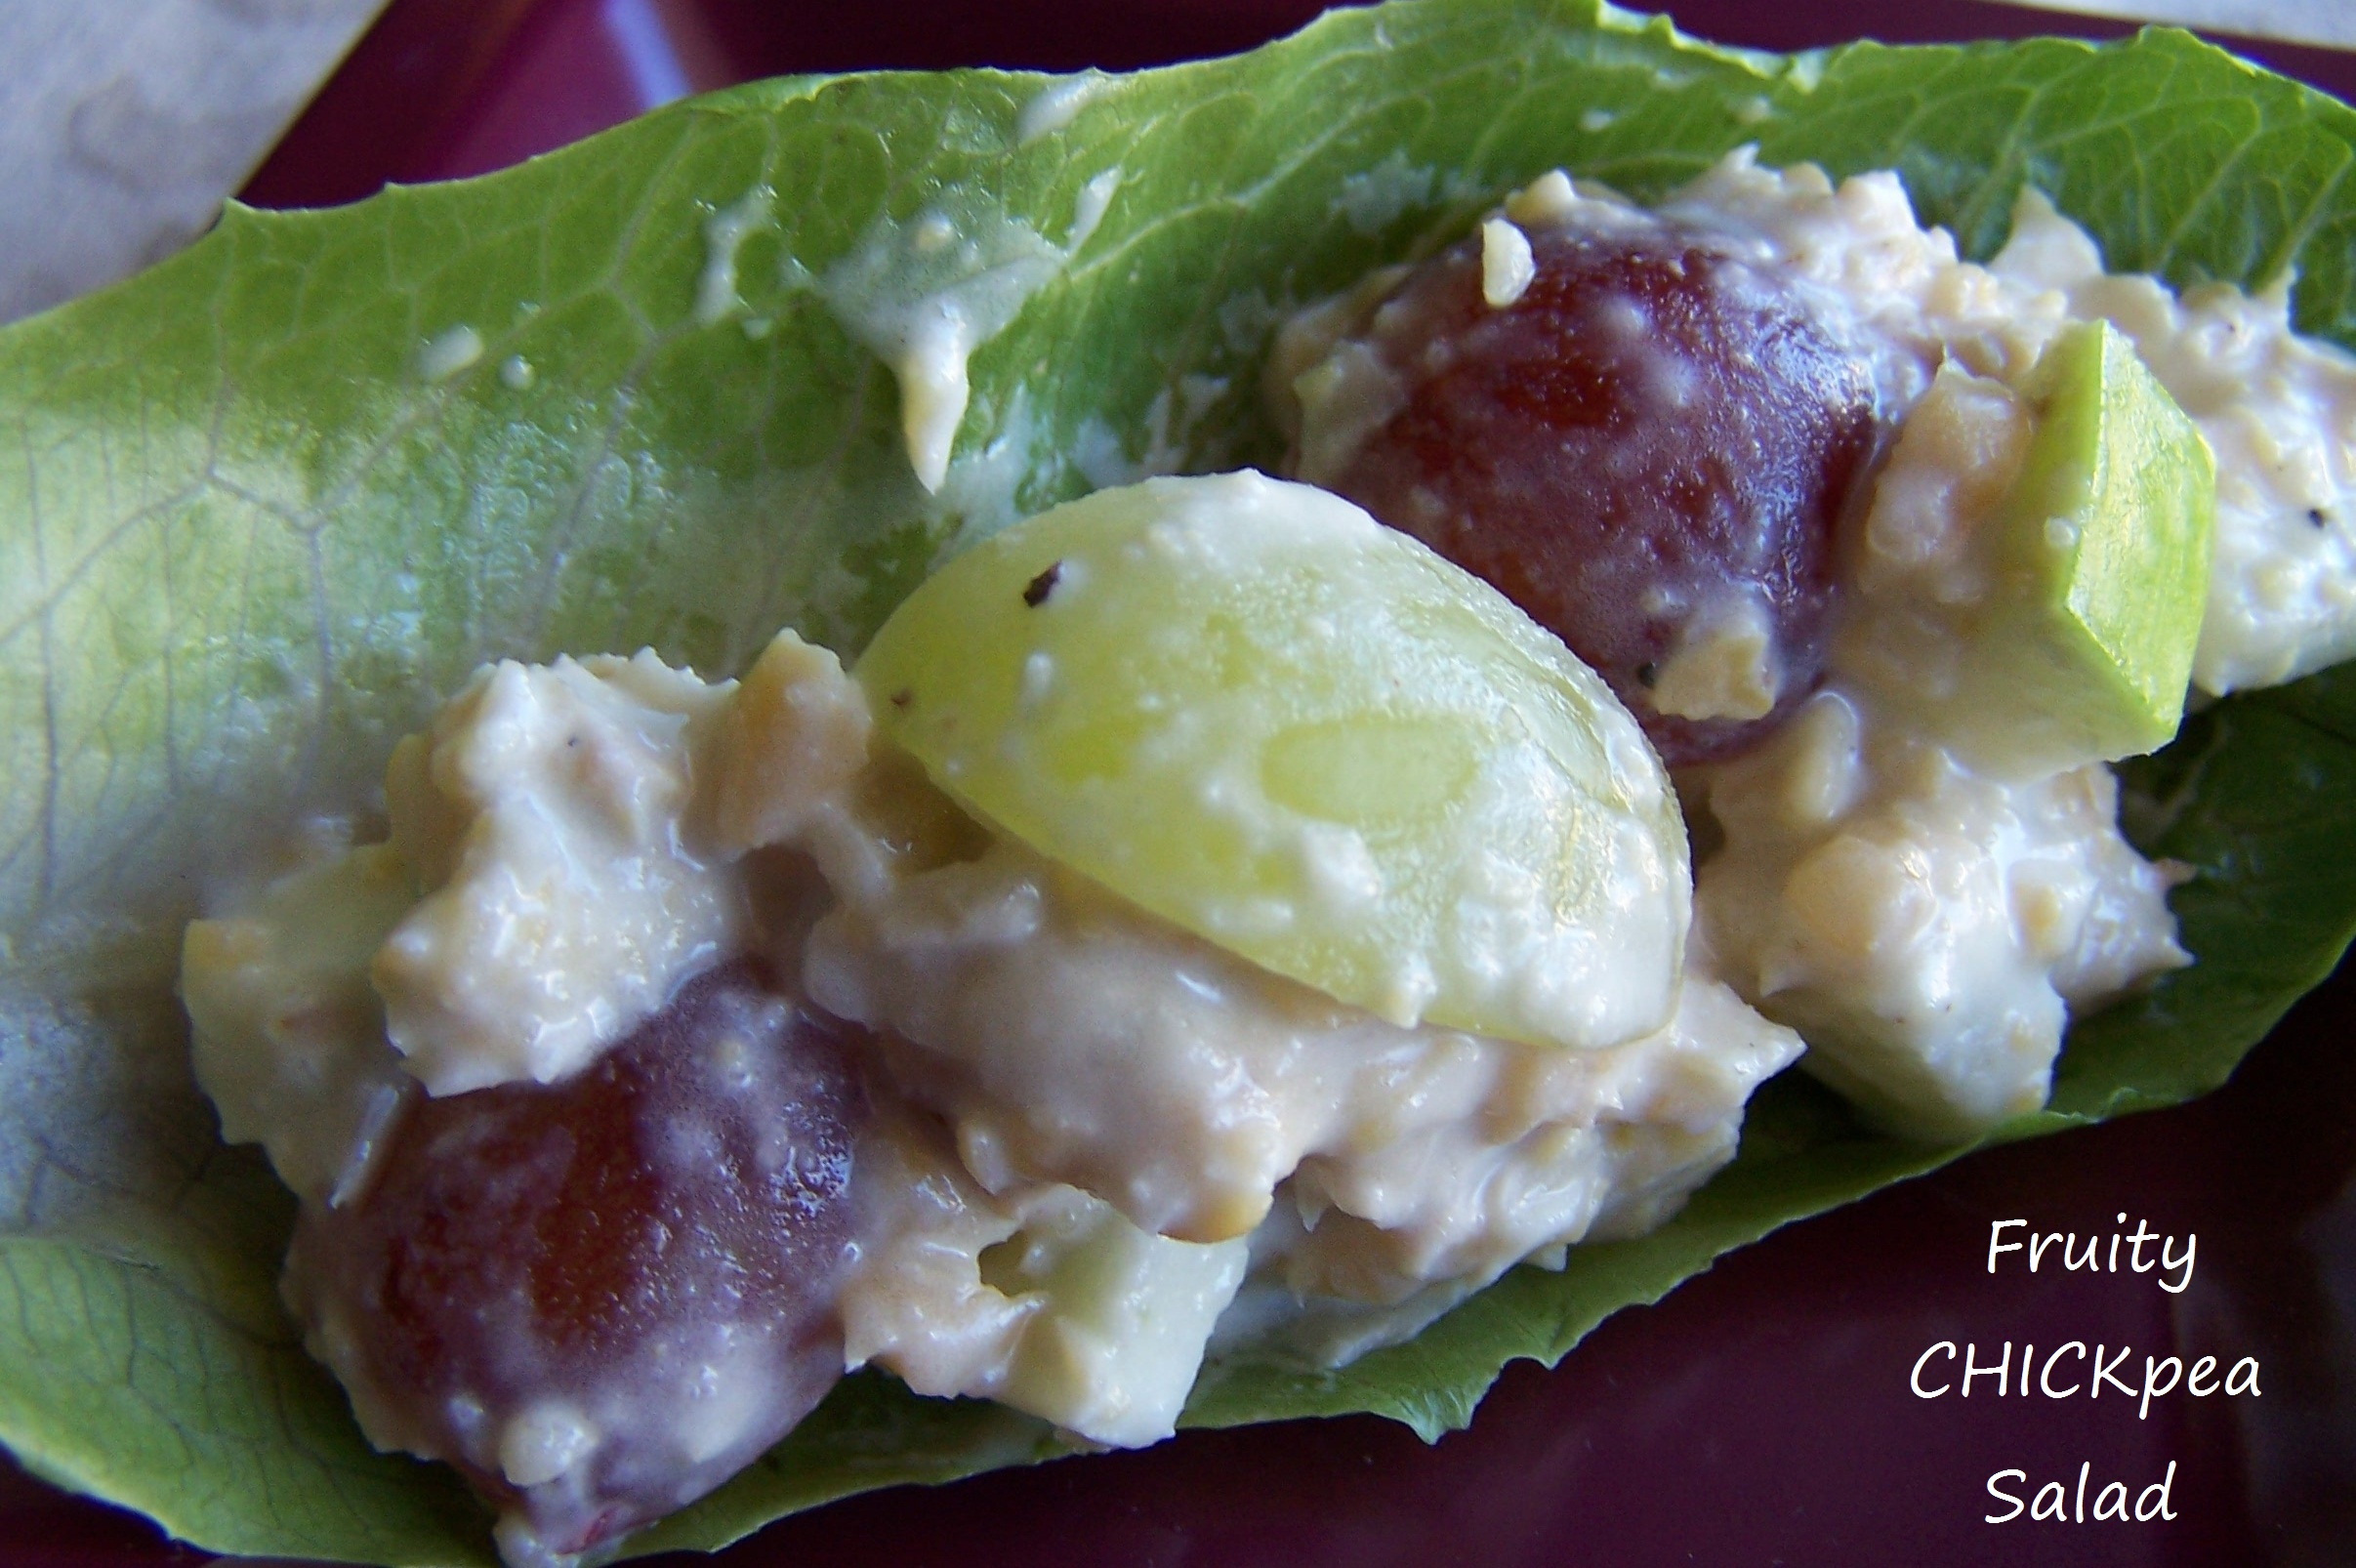 Fruity Chickpea salad in wrap